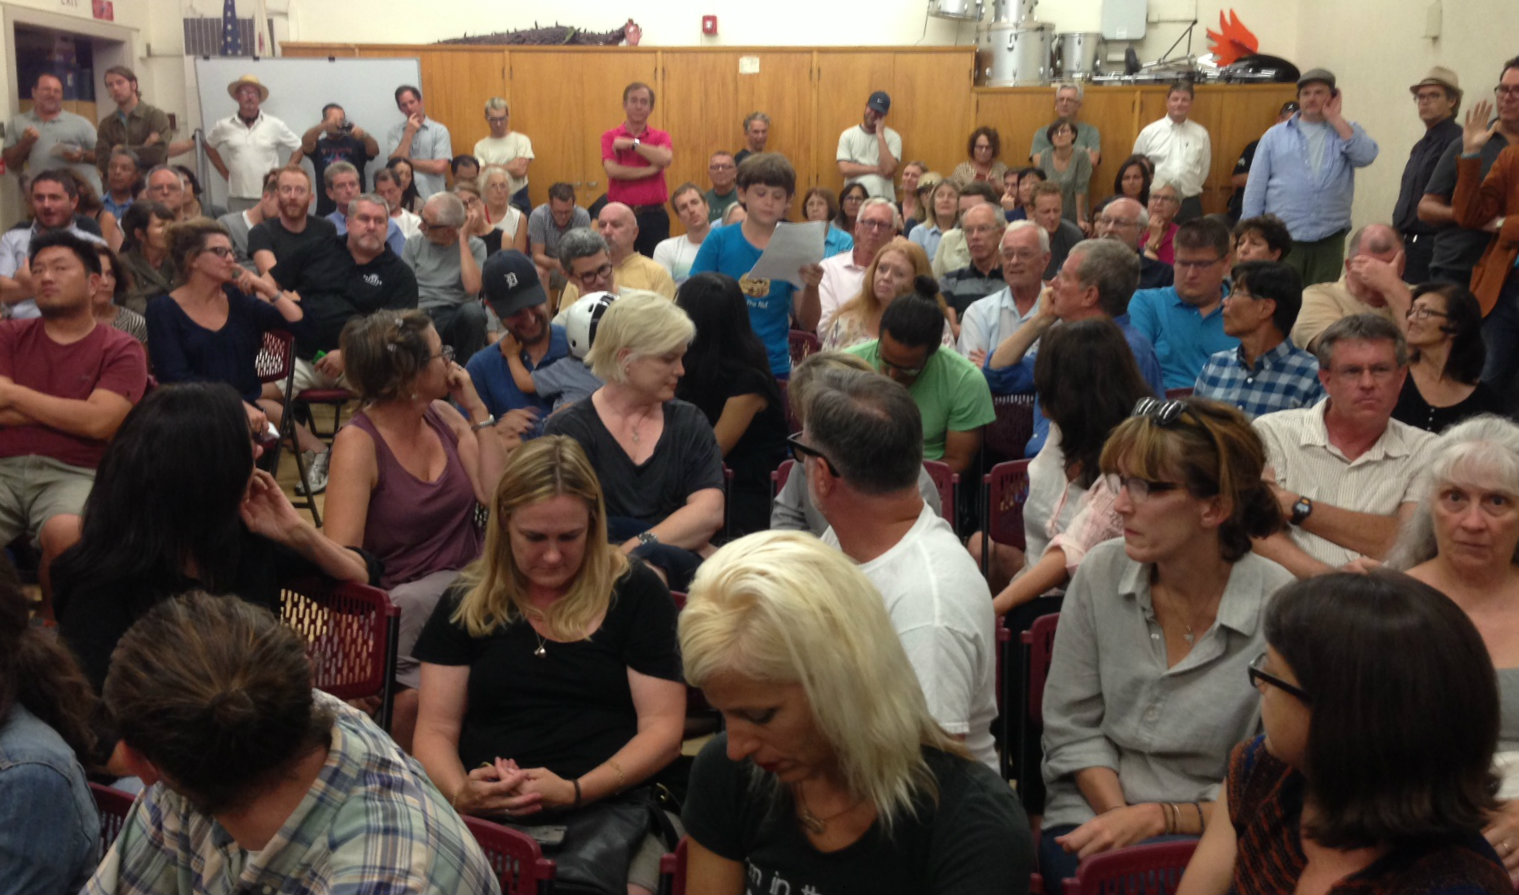 Matlock Grossman (center in blue shirt) reads his comments at the Rowena Avenue forum. Photo by Joe Linton/Streetsblog L.A.